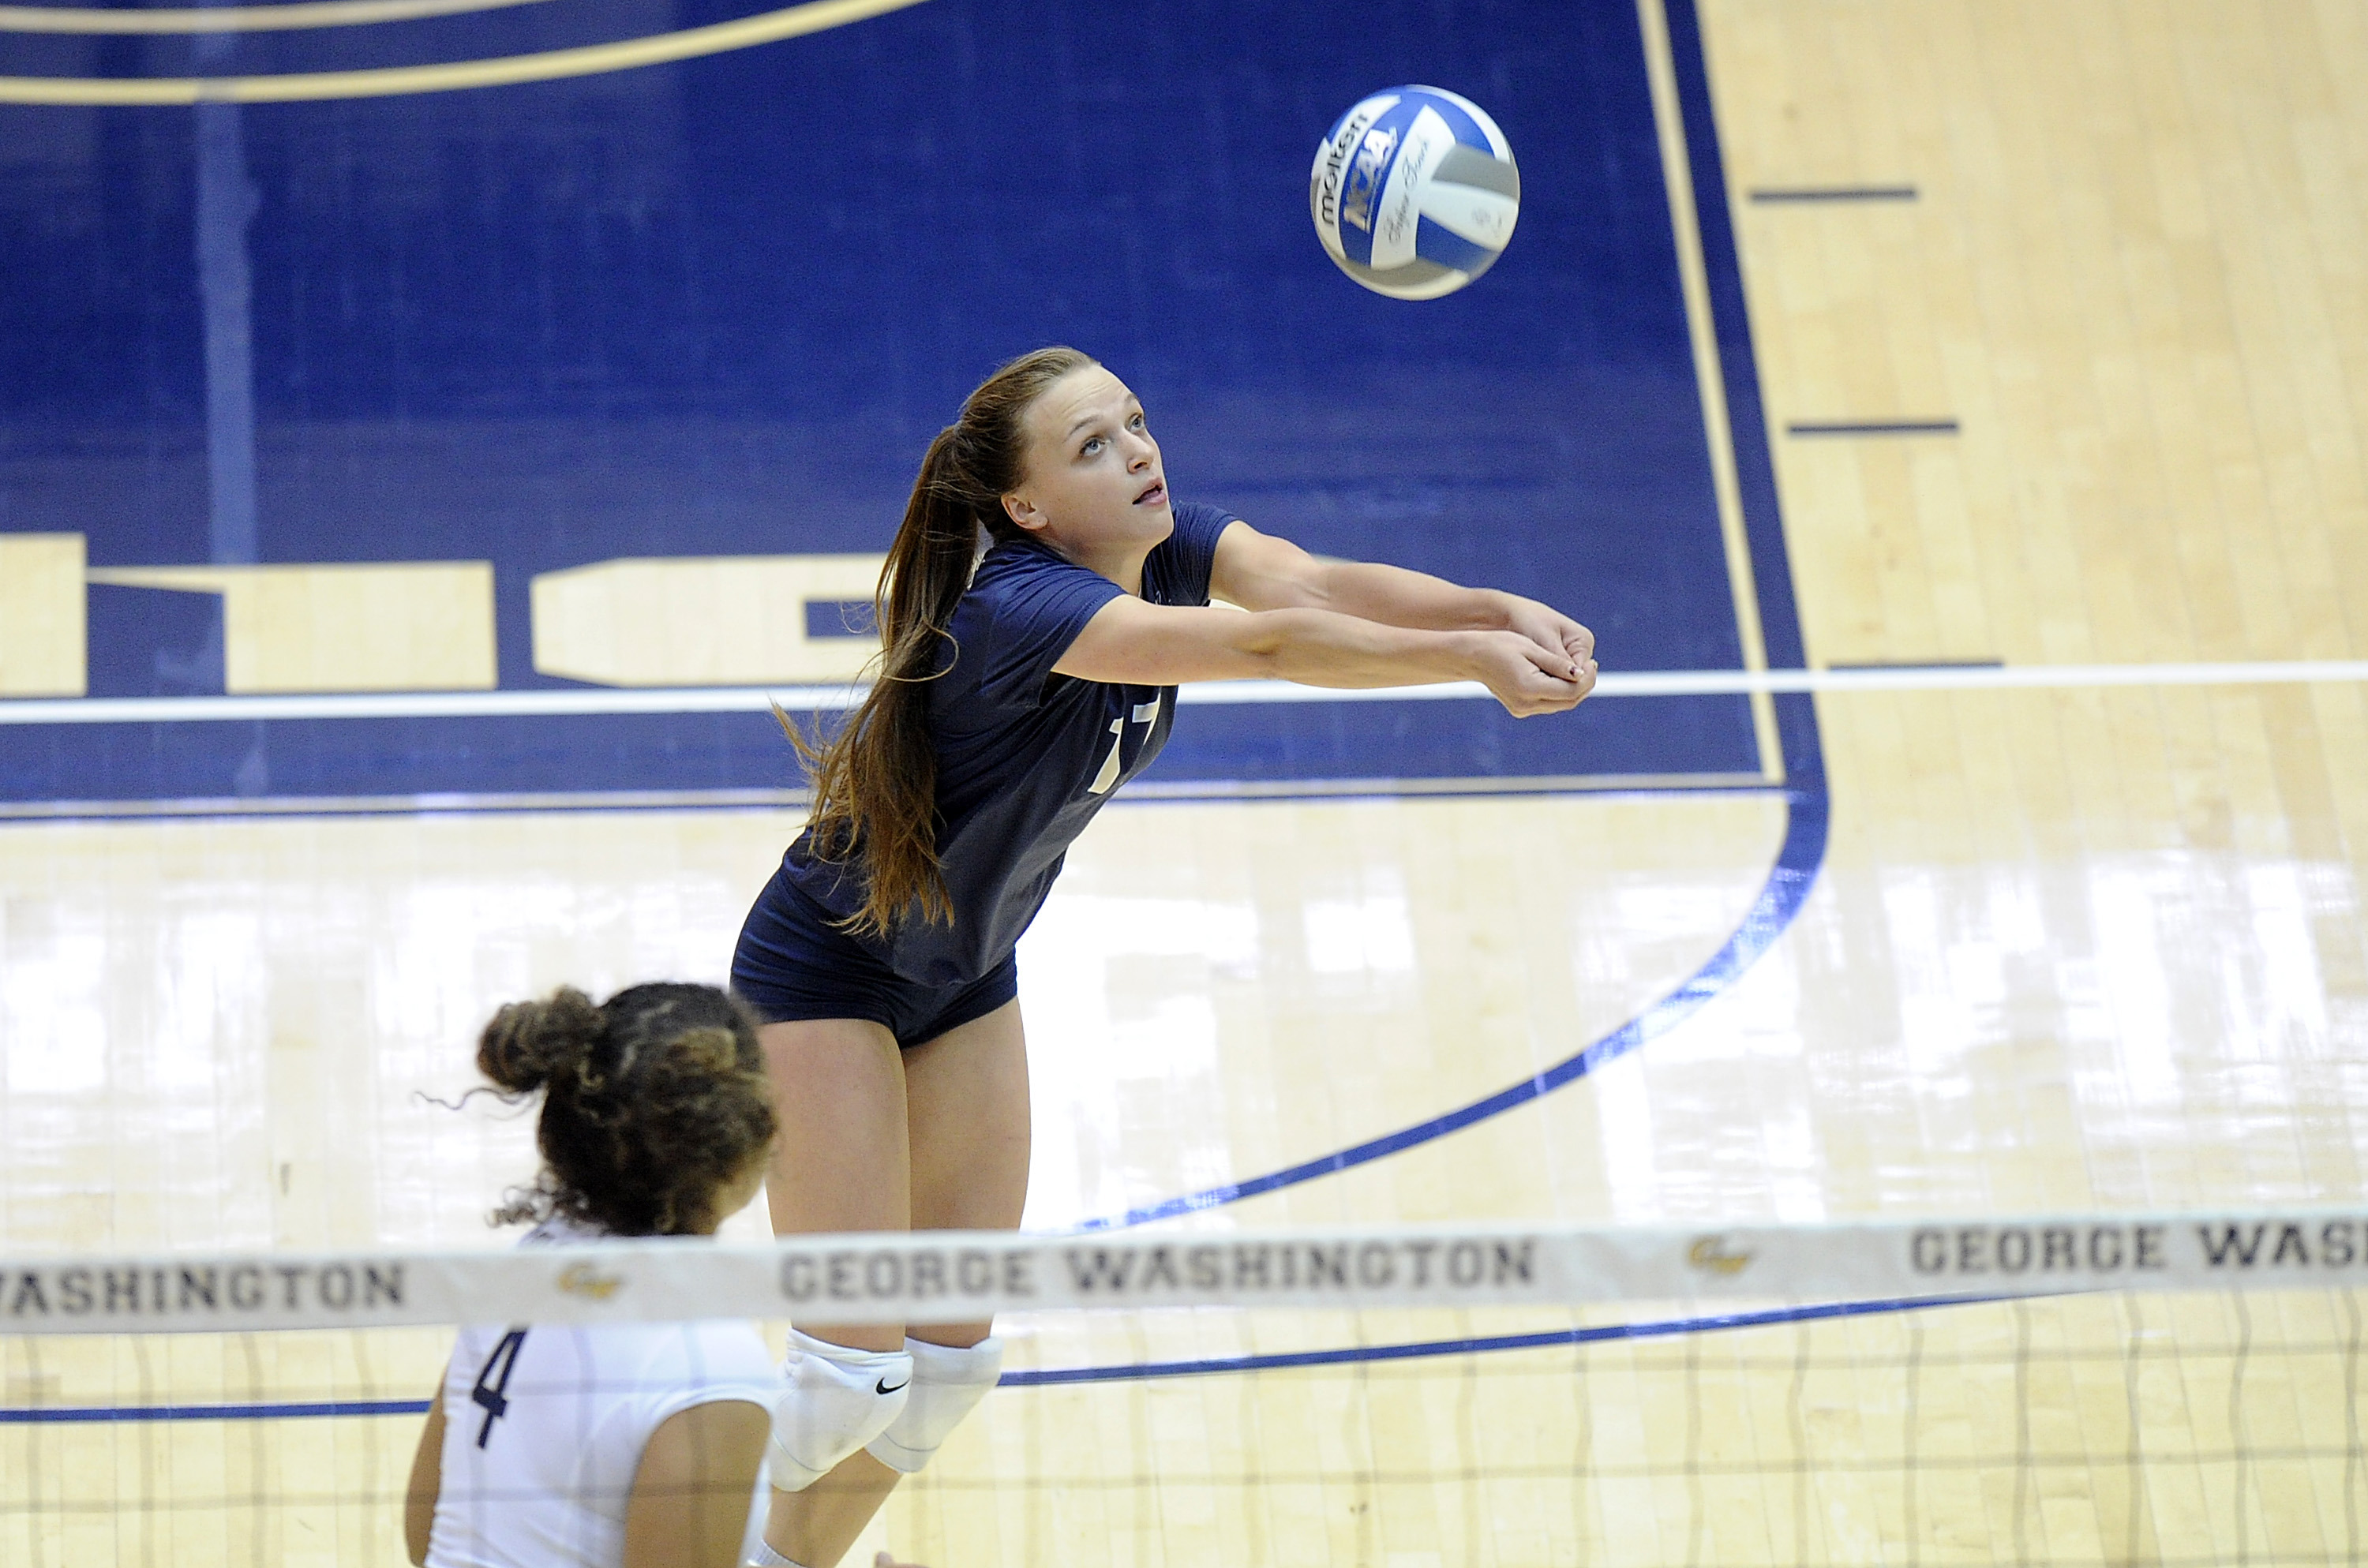 GW Volleyball to Host Pair of A-10 Matches this Weekend - George